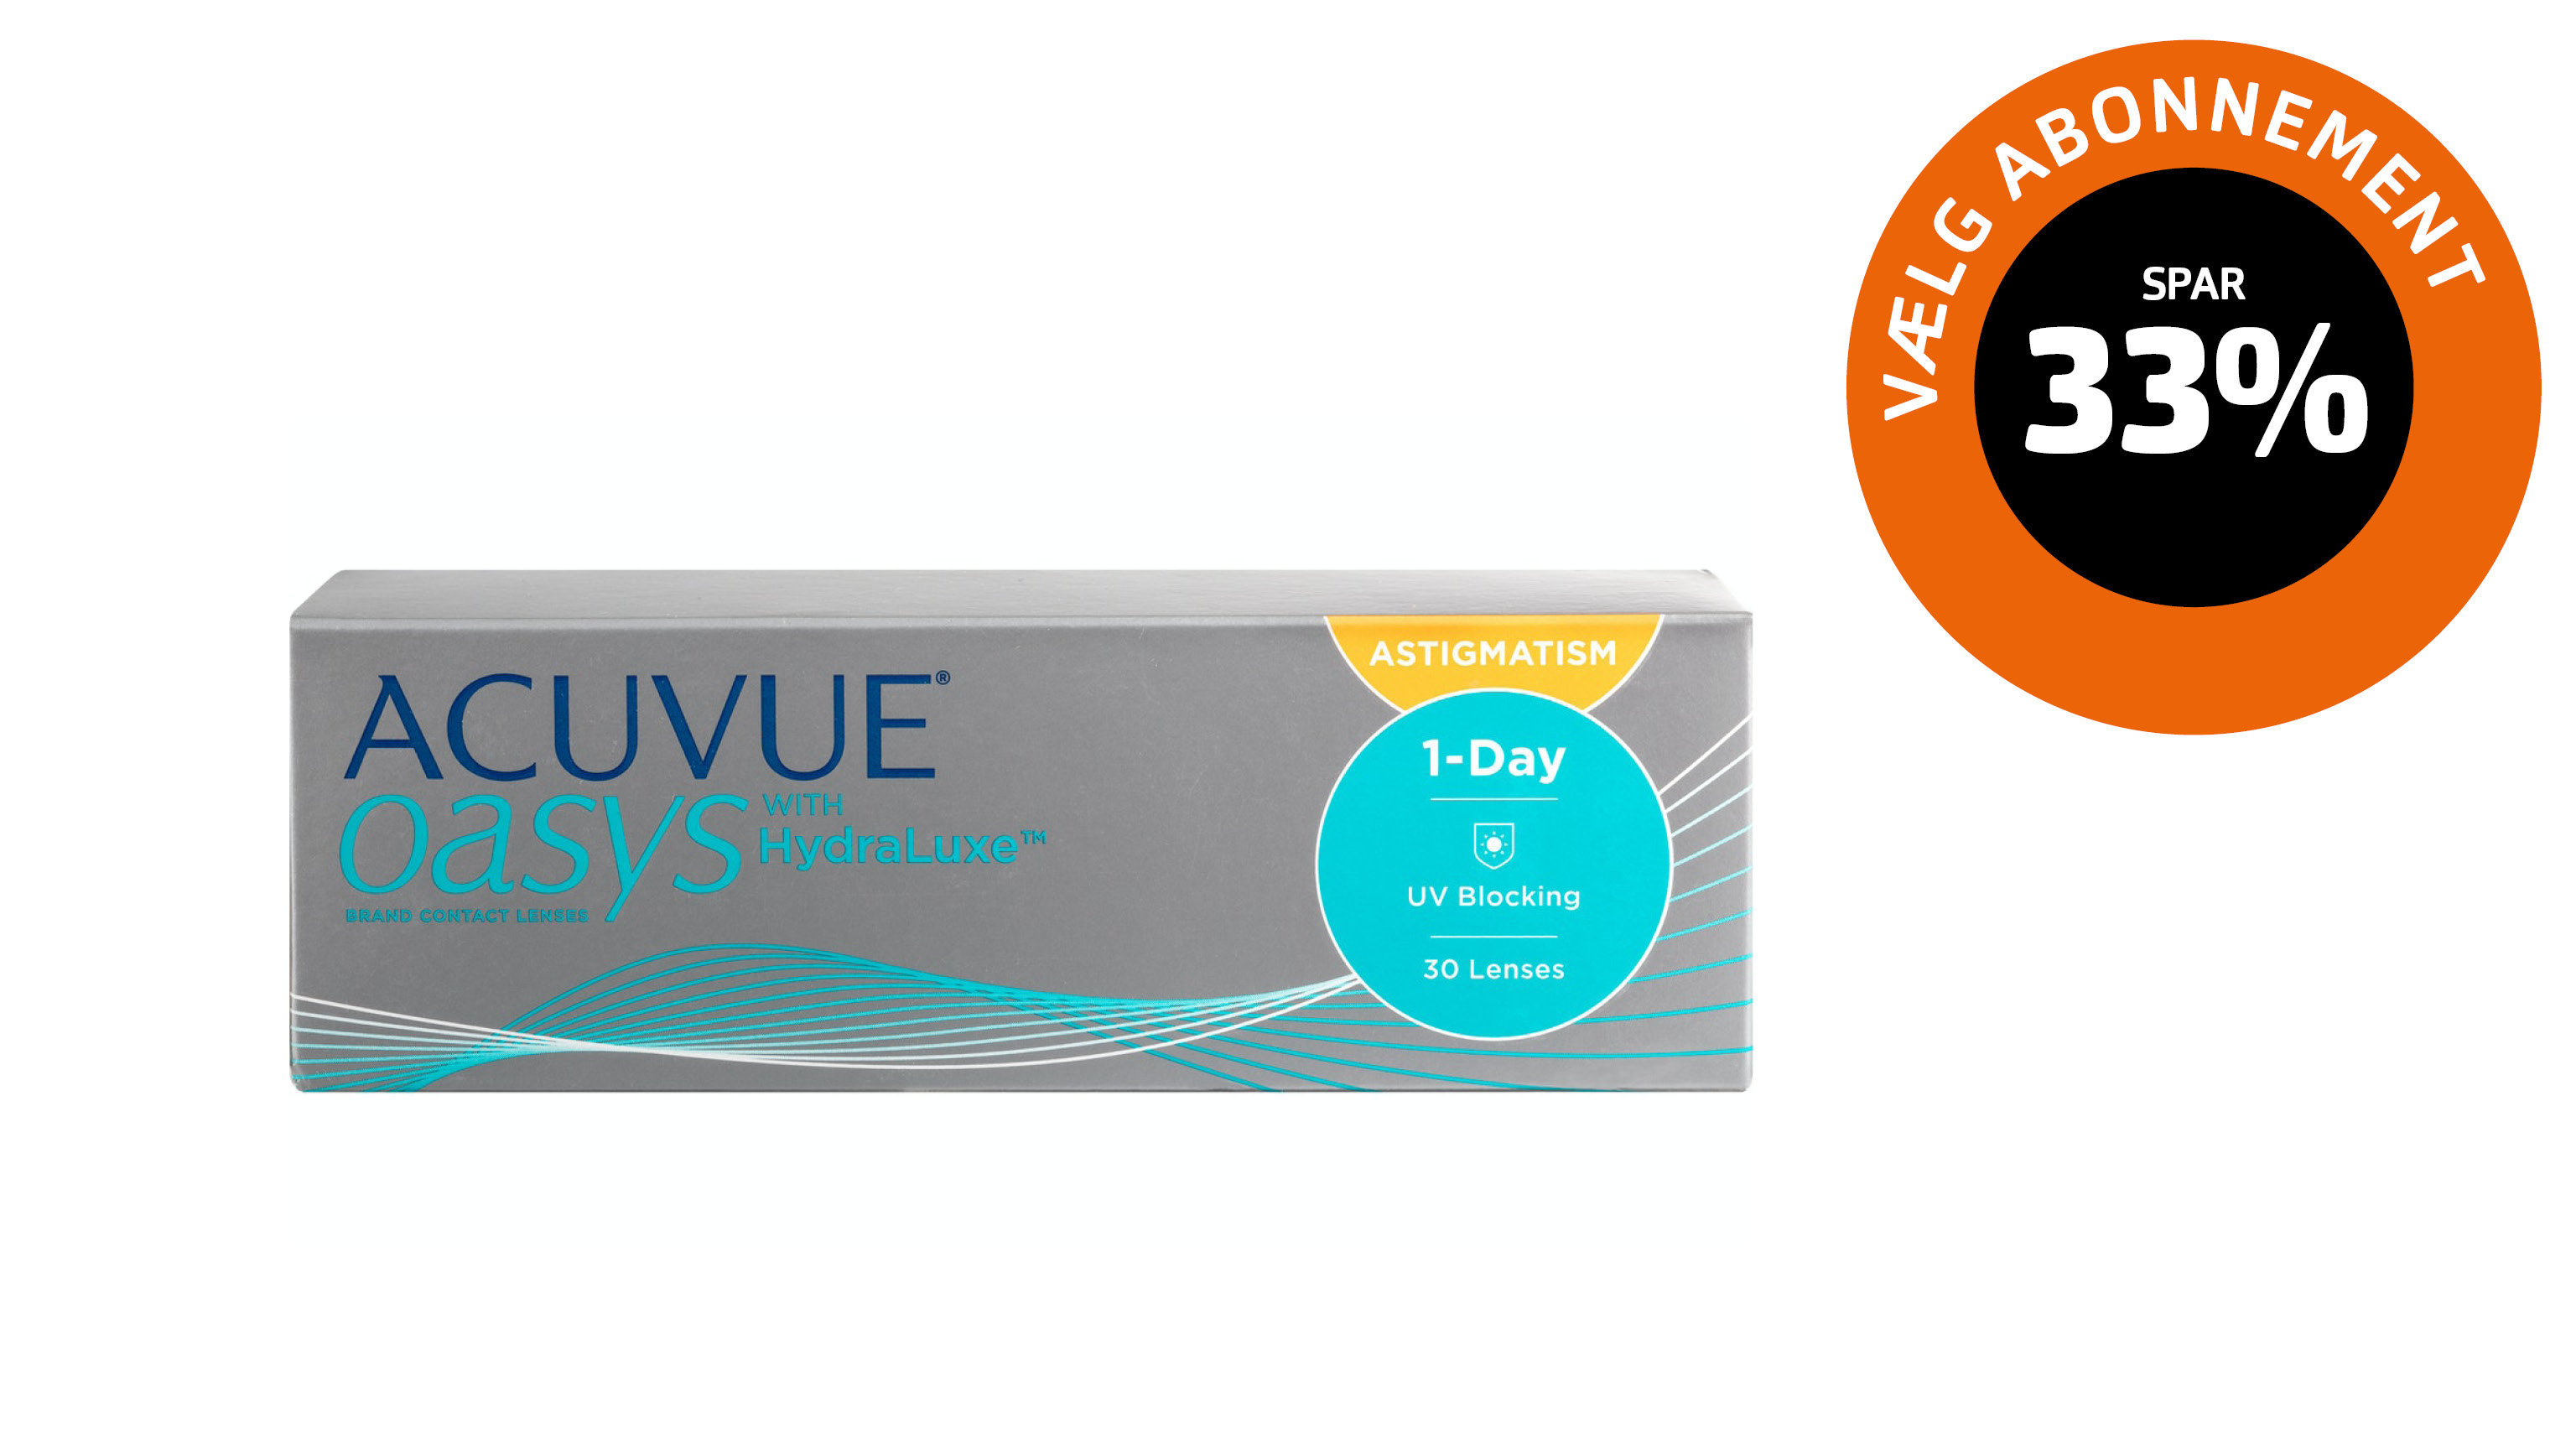 Front 1-Day ACUVUE® Oasys for astigmatism